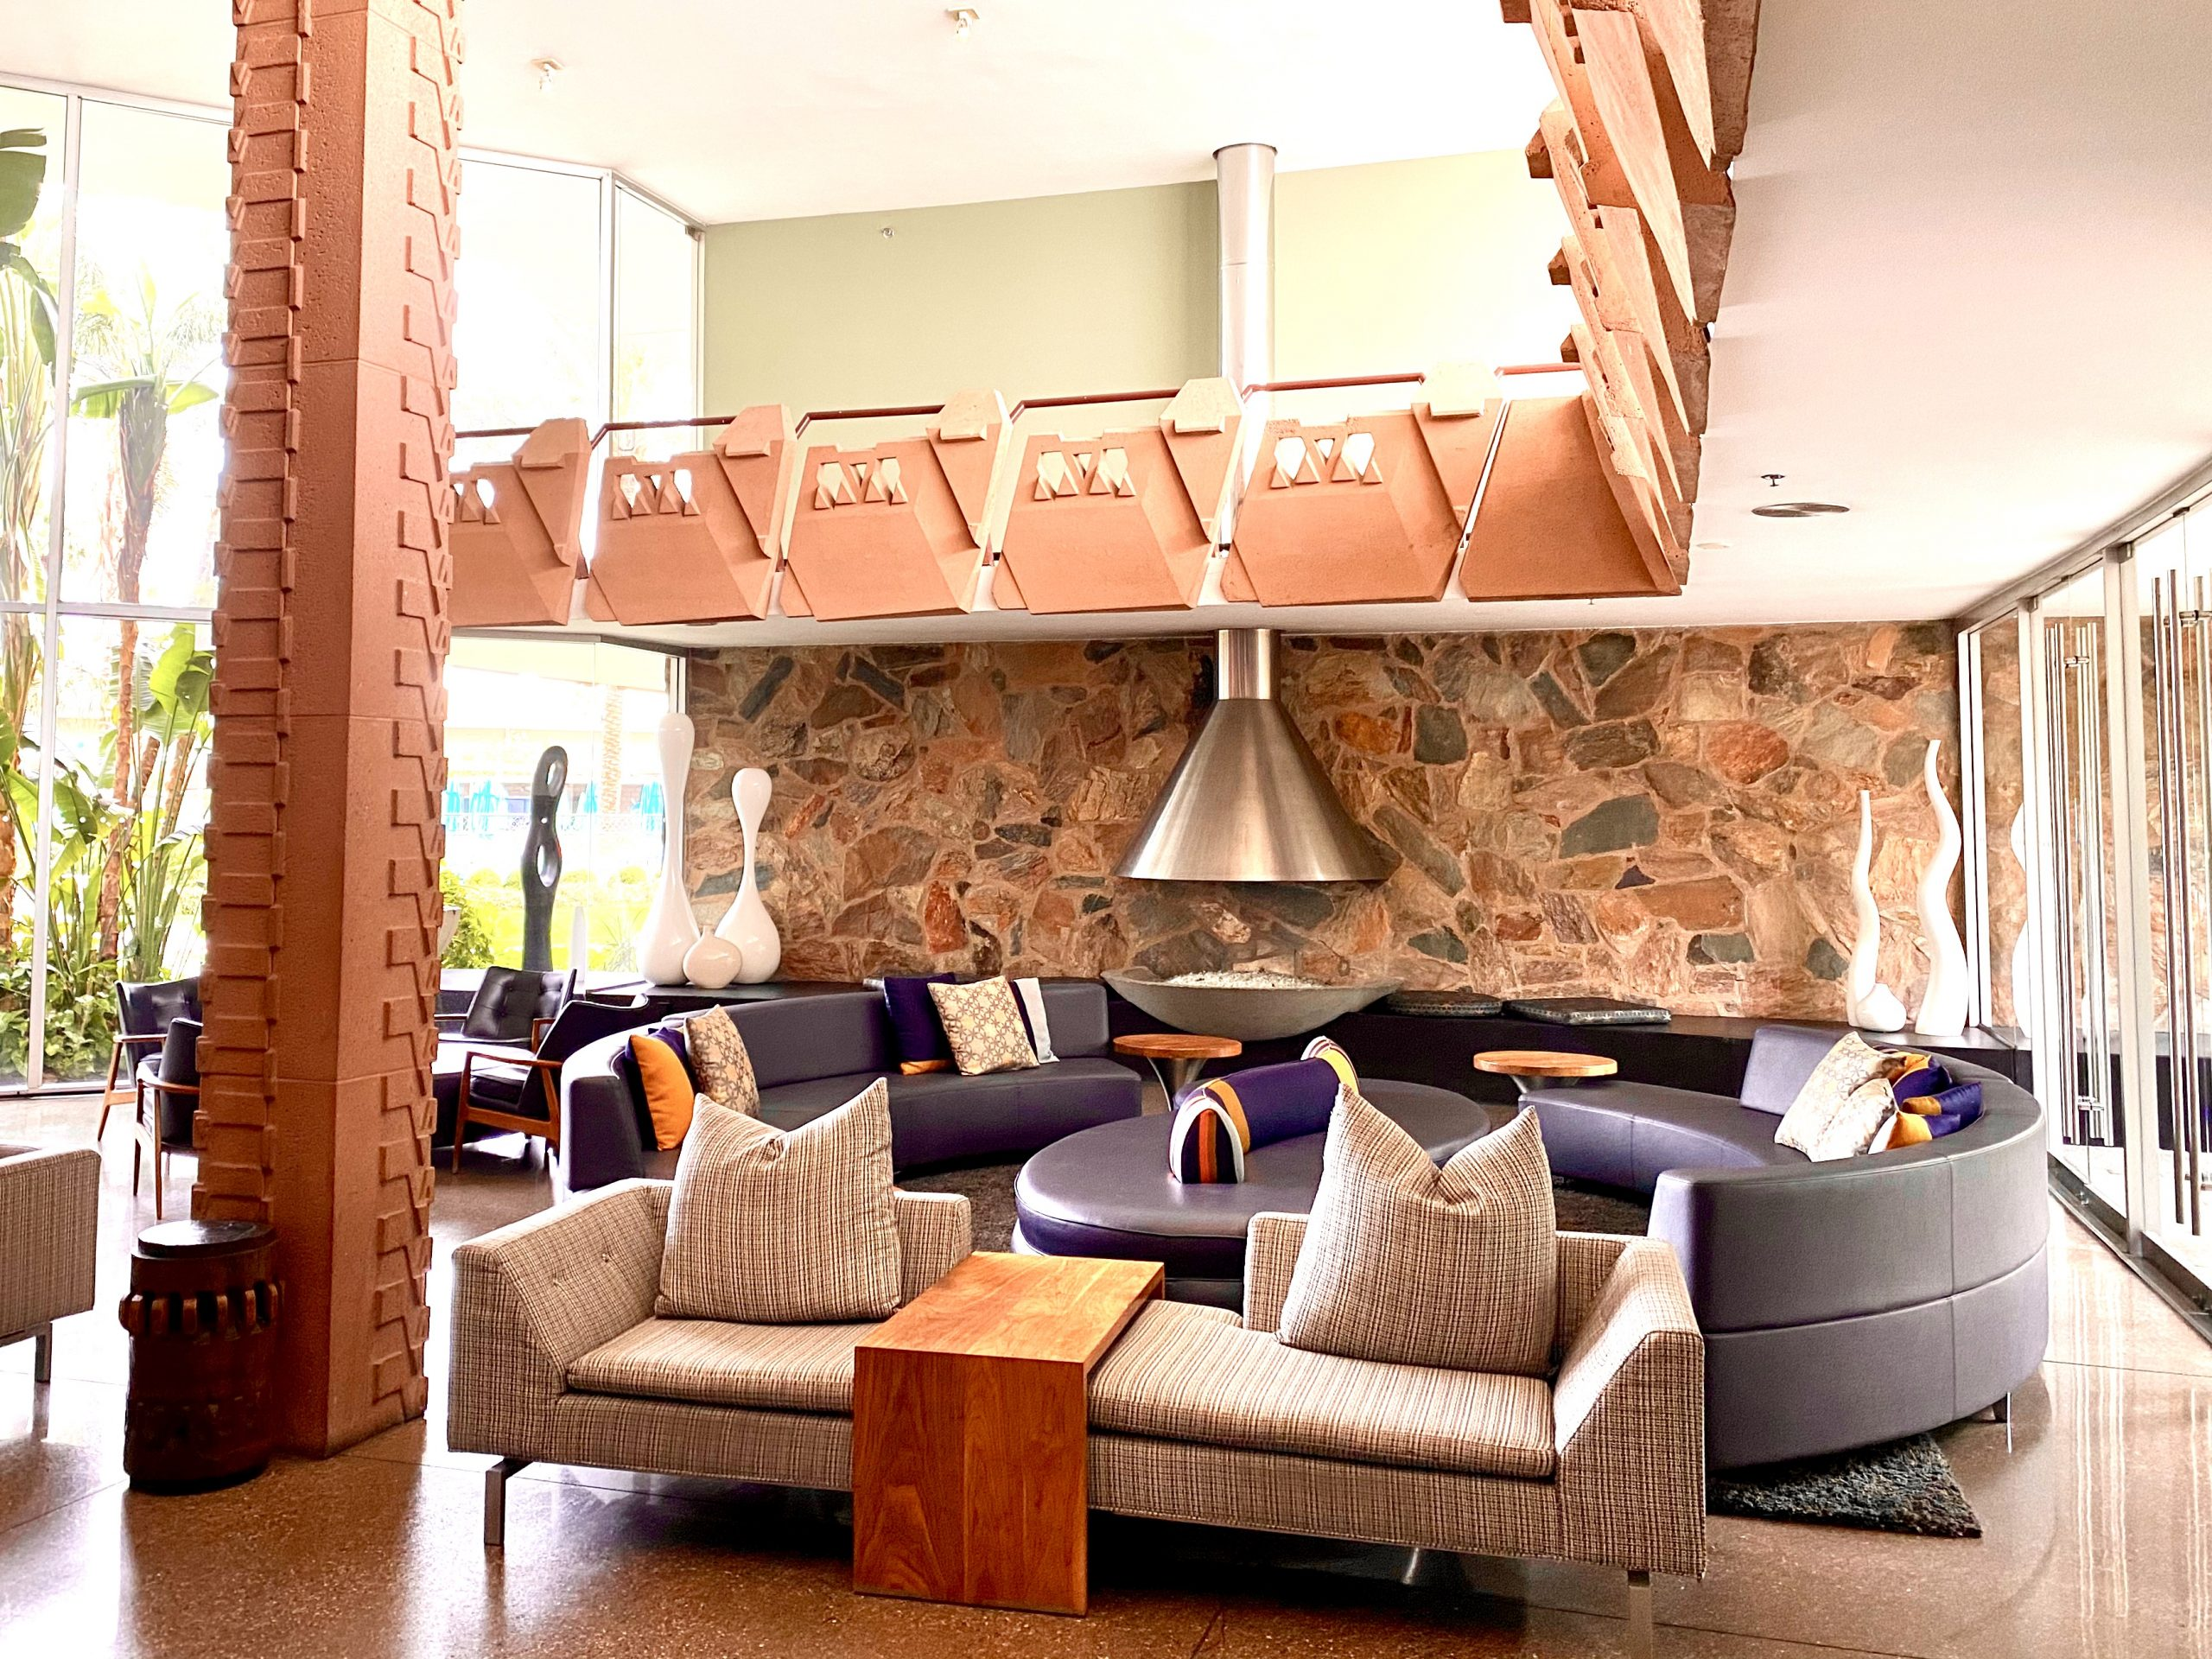 lobby seating area a the Hotel Valley Ho in Scottsdale, Arizona